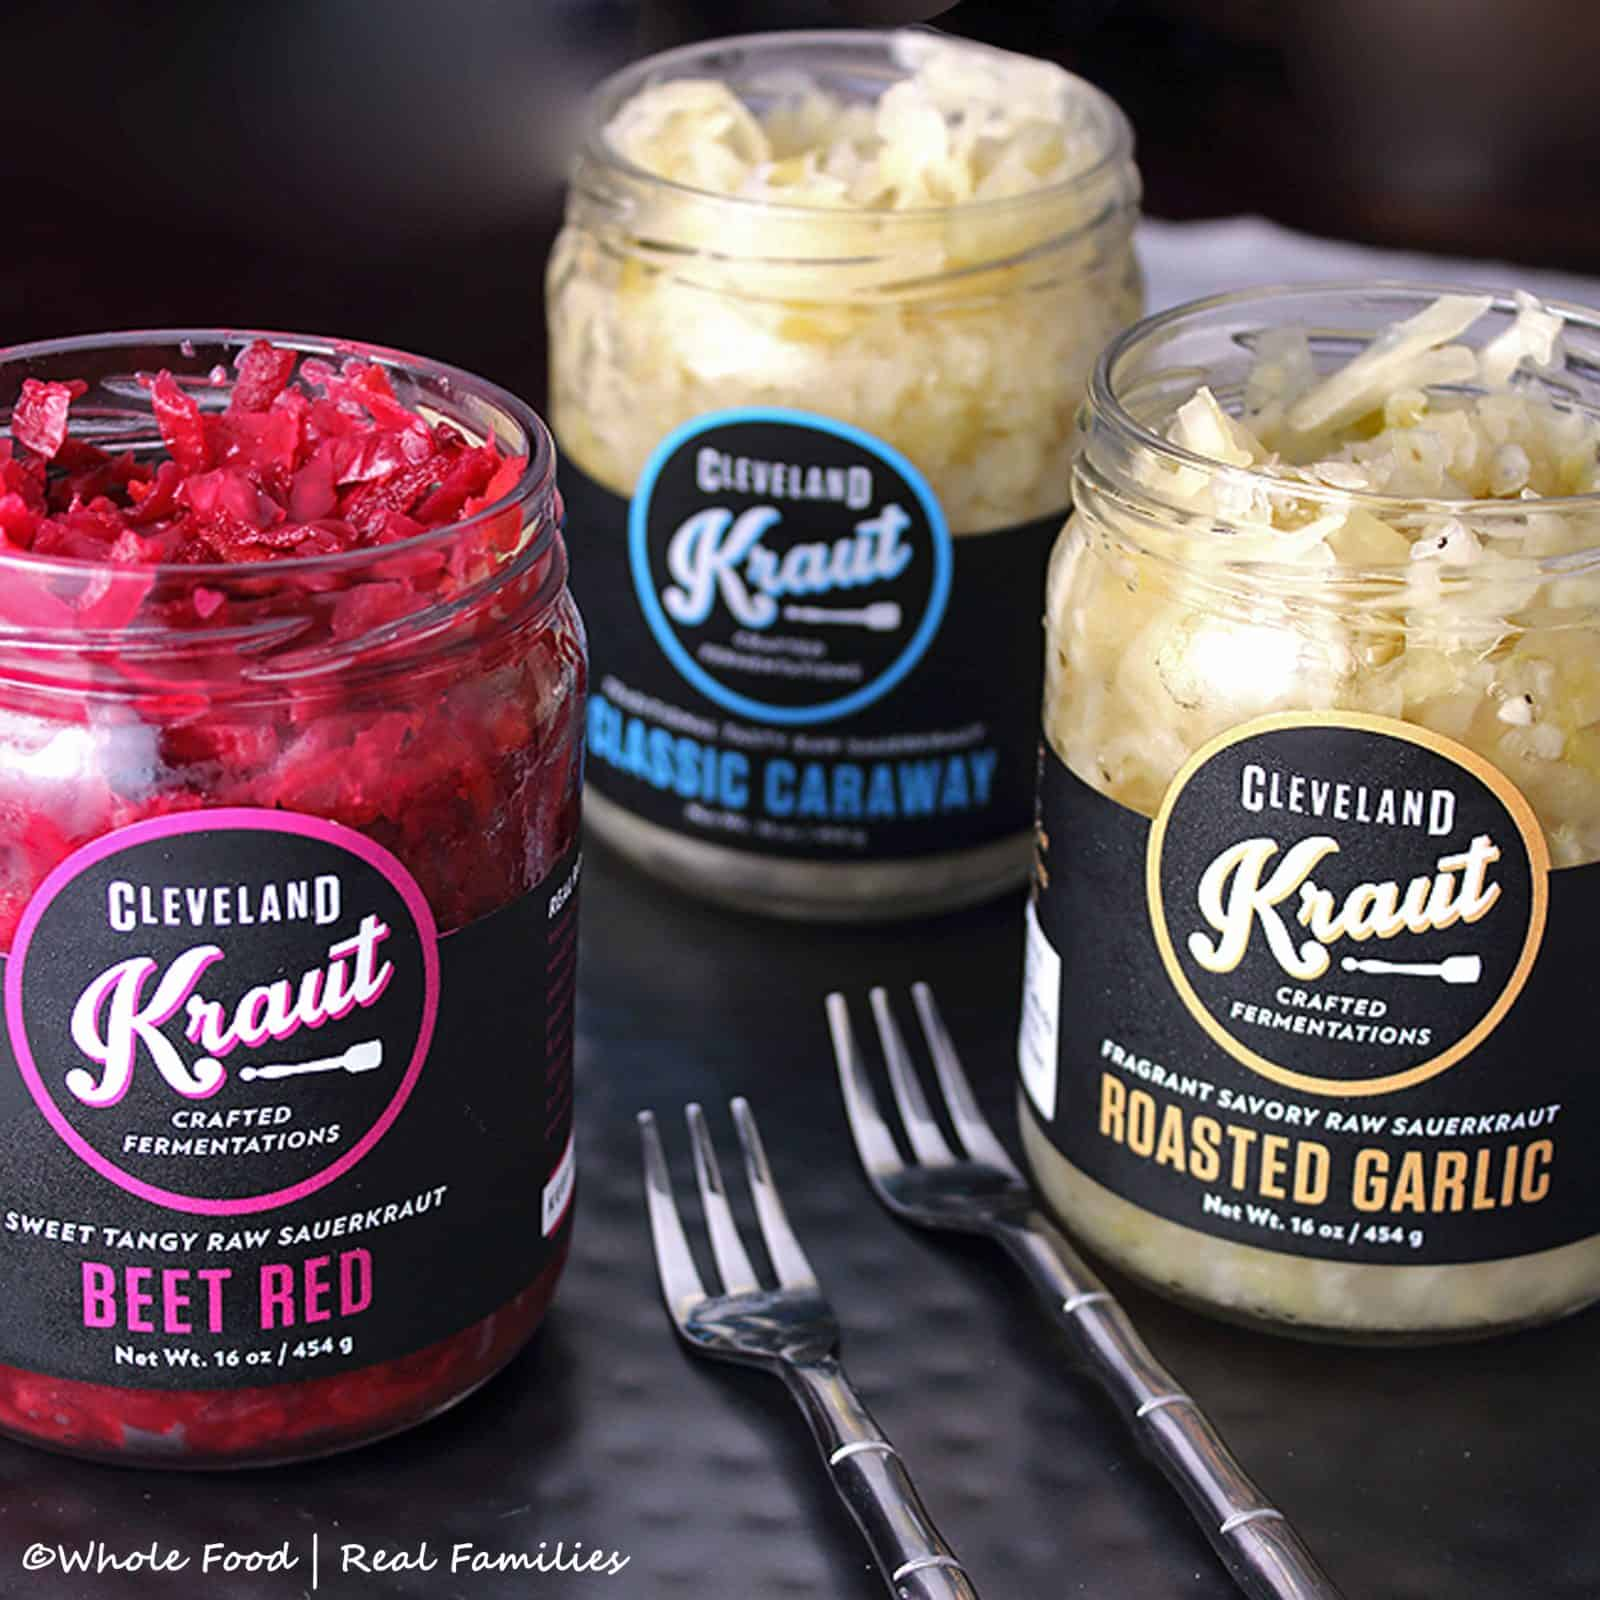 Cleveland Kraut Products